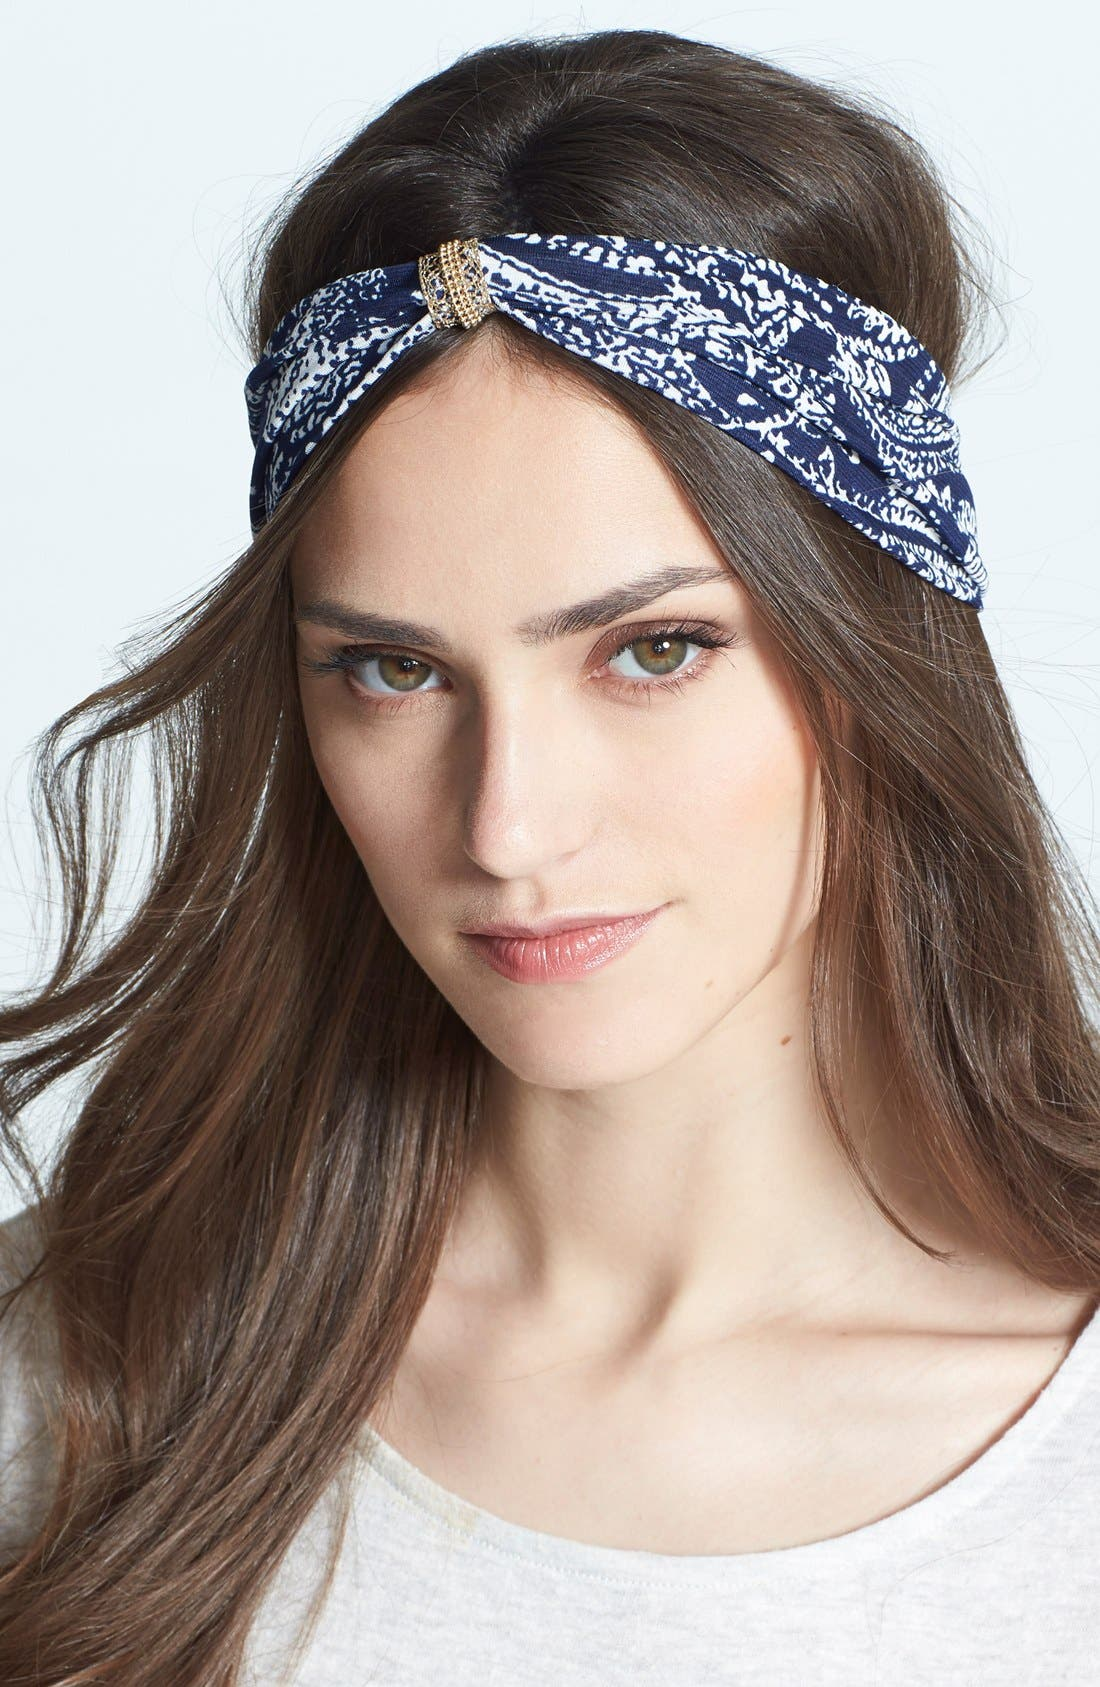 Alternate Image 1 Selected - Cara 'Paisley & Jewels' Head Wrap